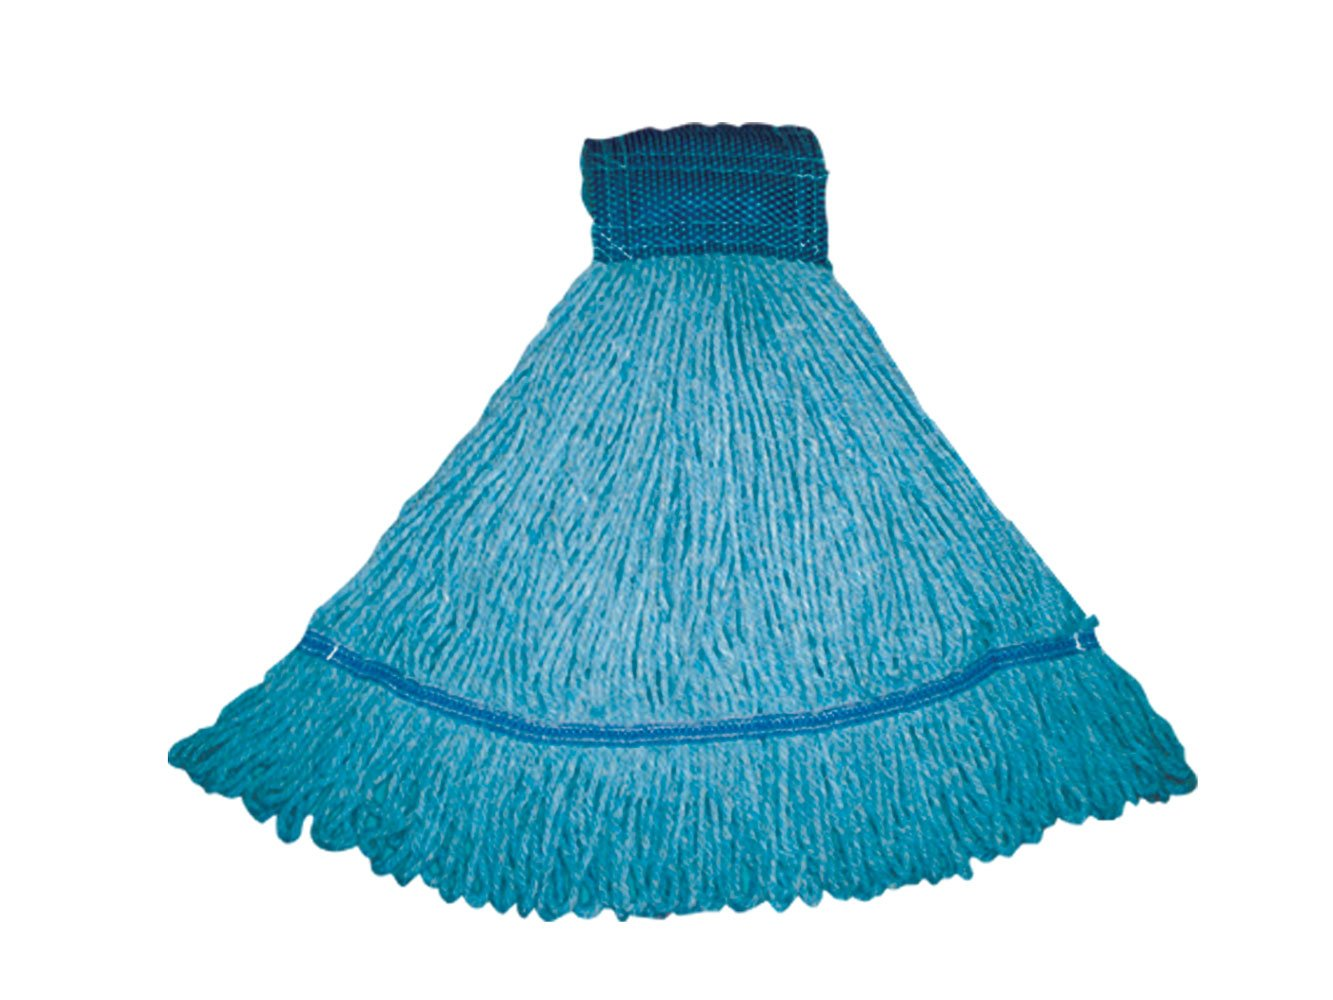 Royce Rolls Premium Blend Loop Mop Medium-Size General Maintenance & Health Care - Blue #3300 Series